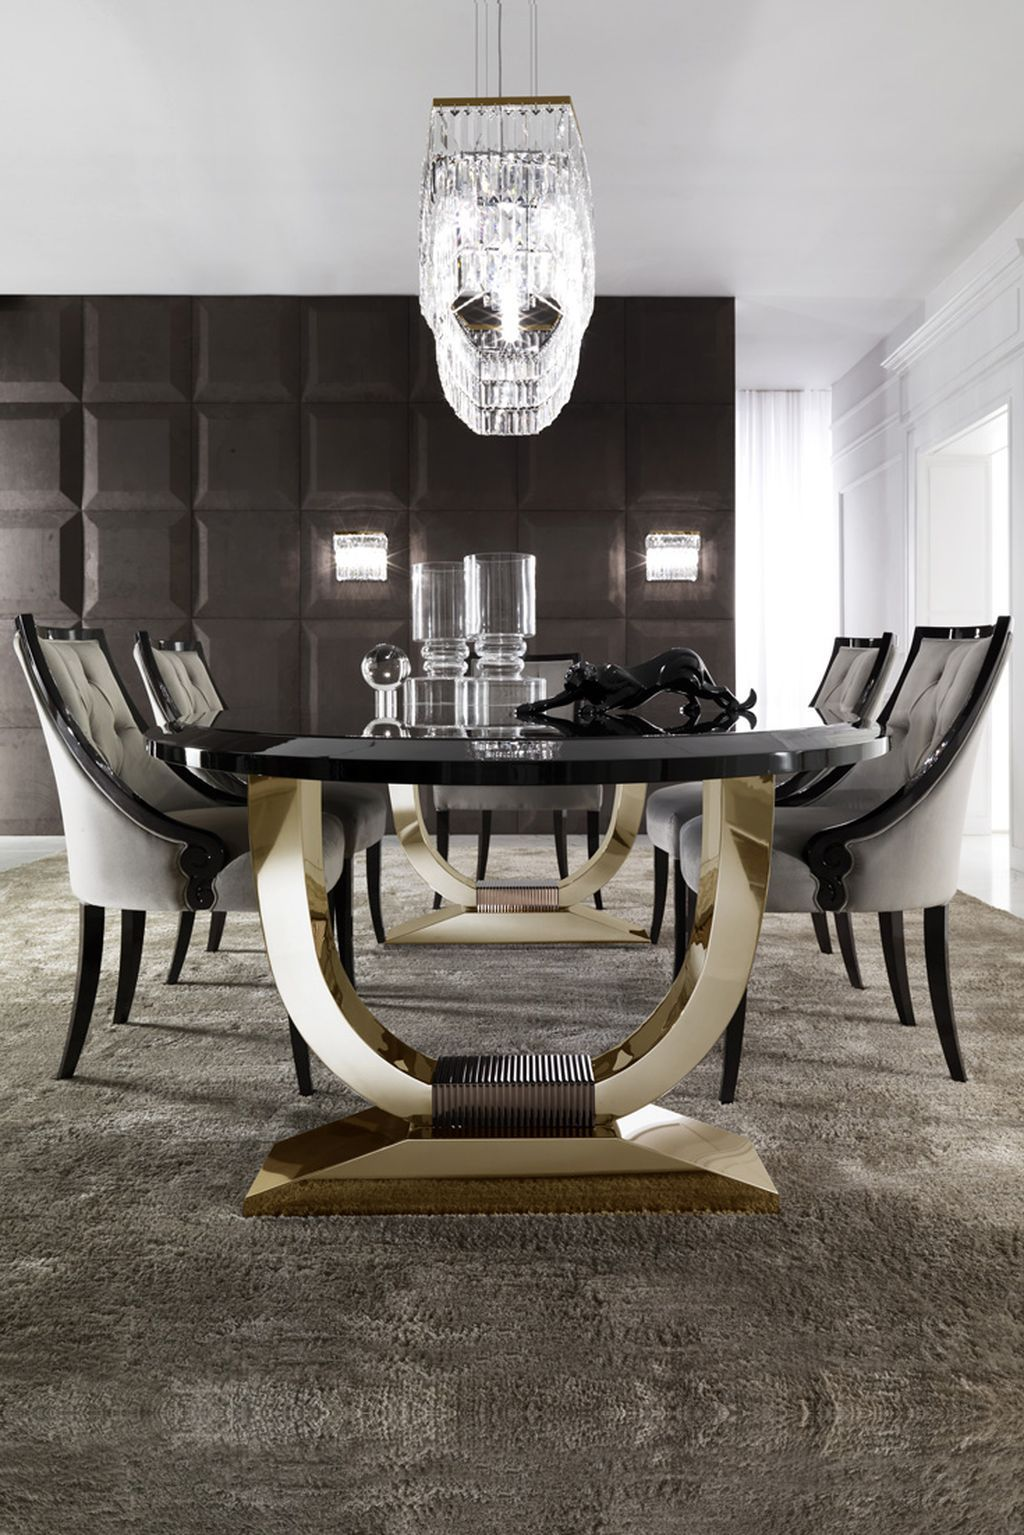 Pin By Rameshwari Padname On Dining Table Dinning Table Design